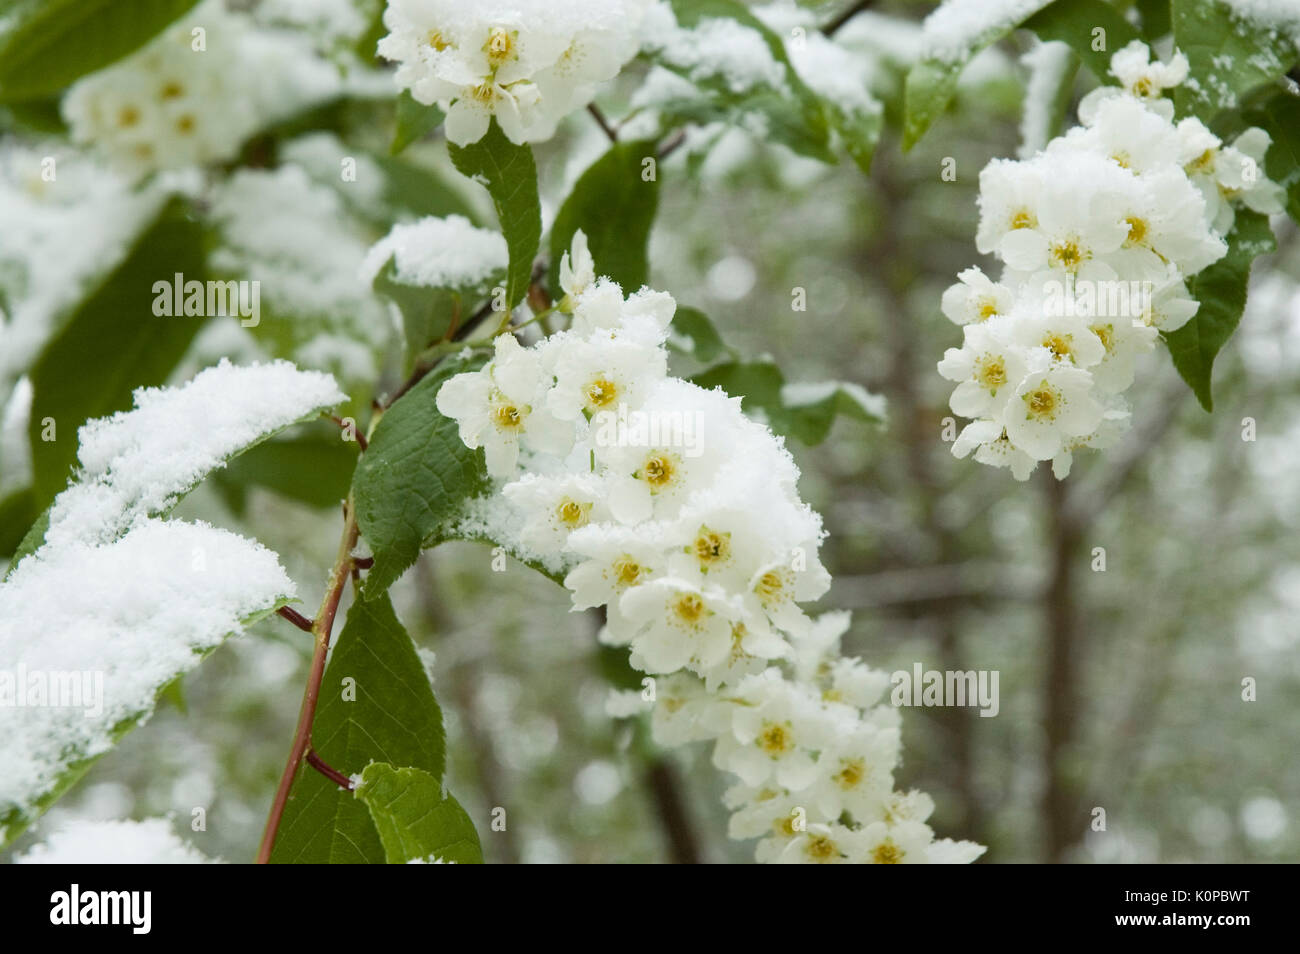 snow on blossoms of a spiraea - Stock Image